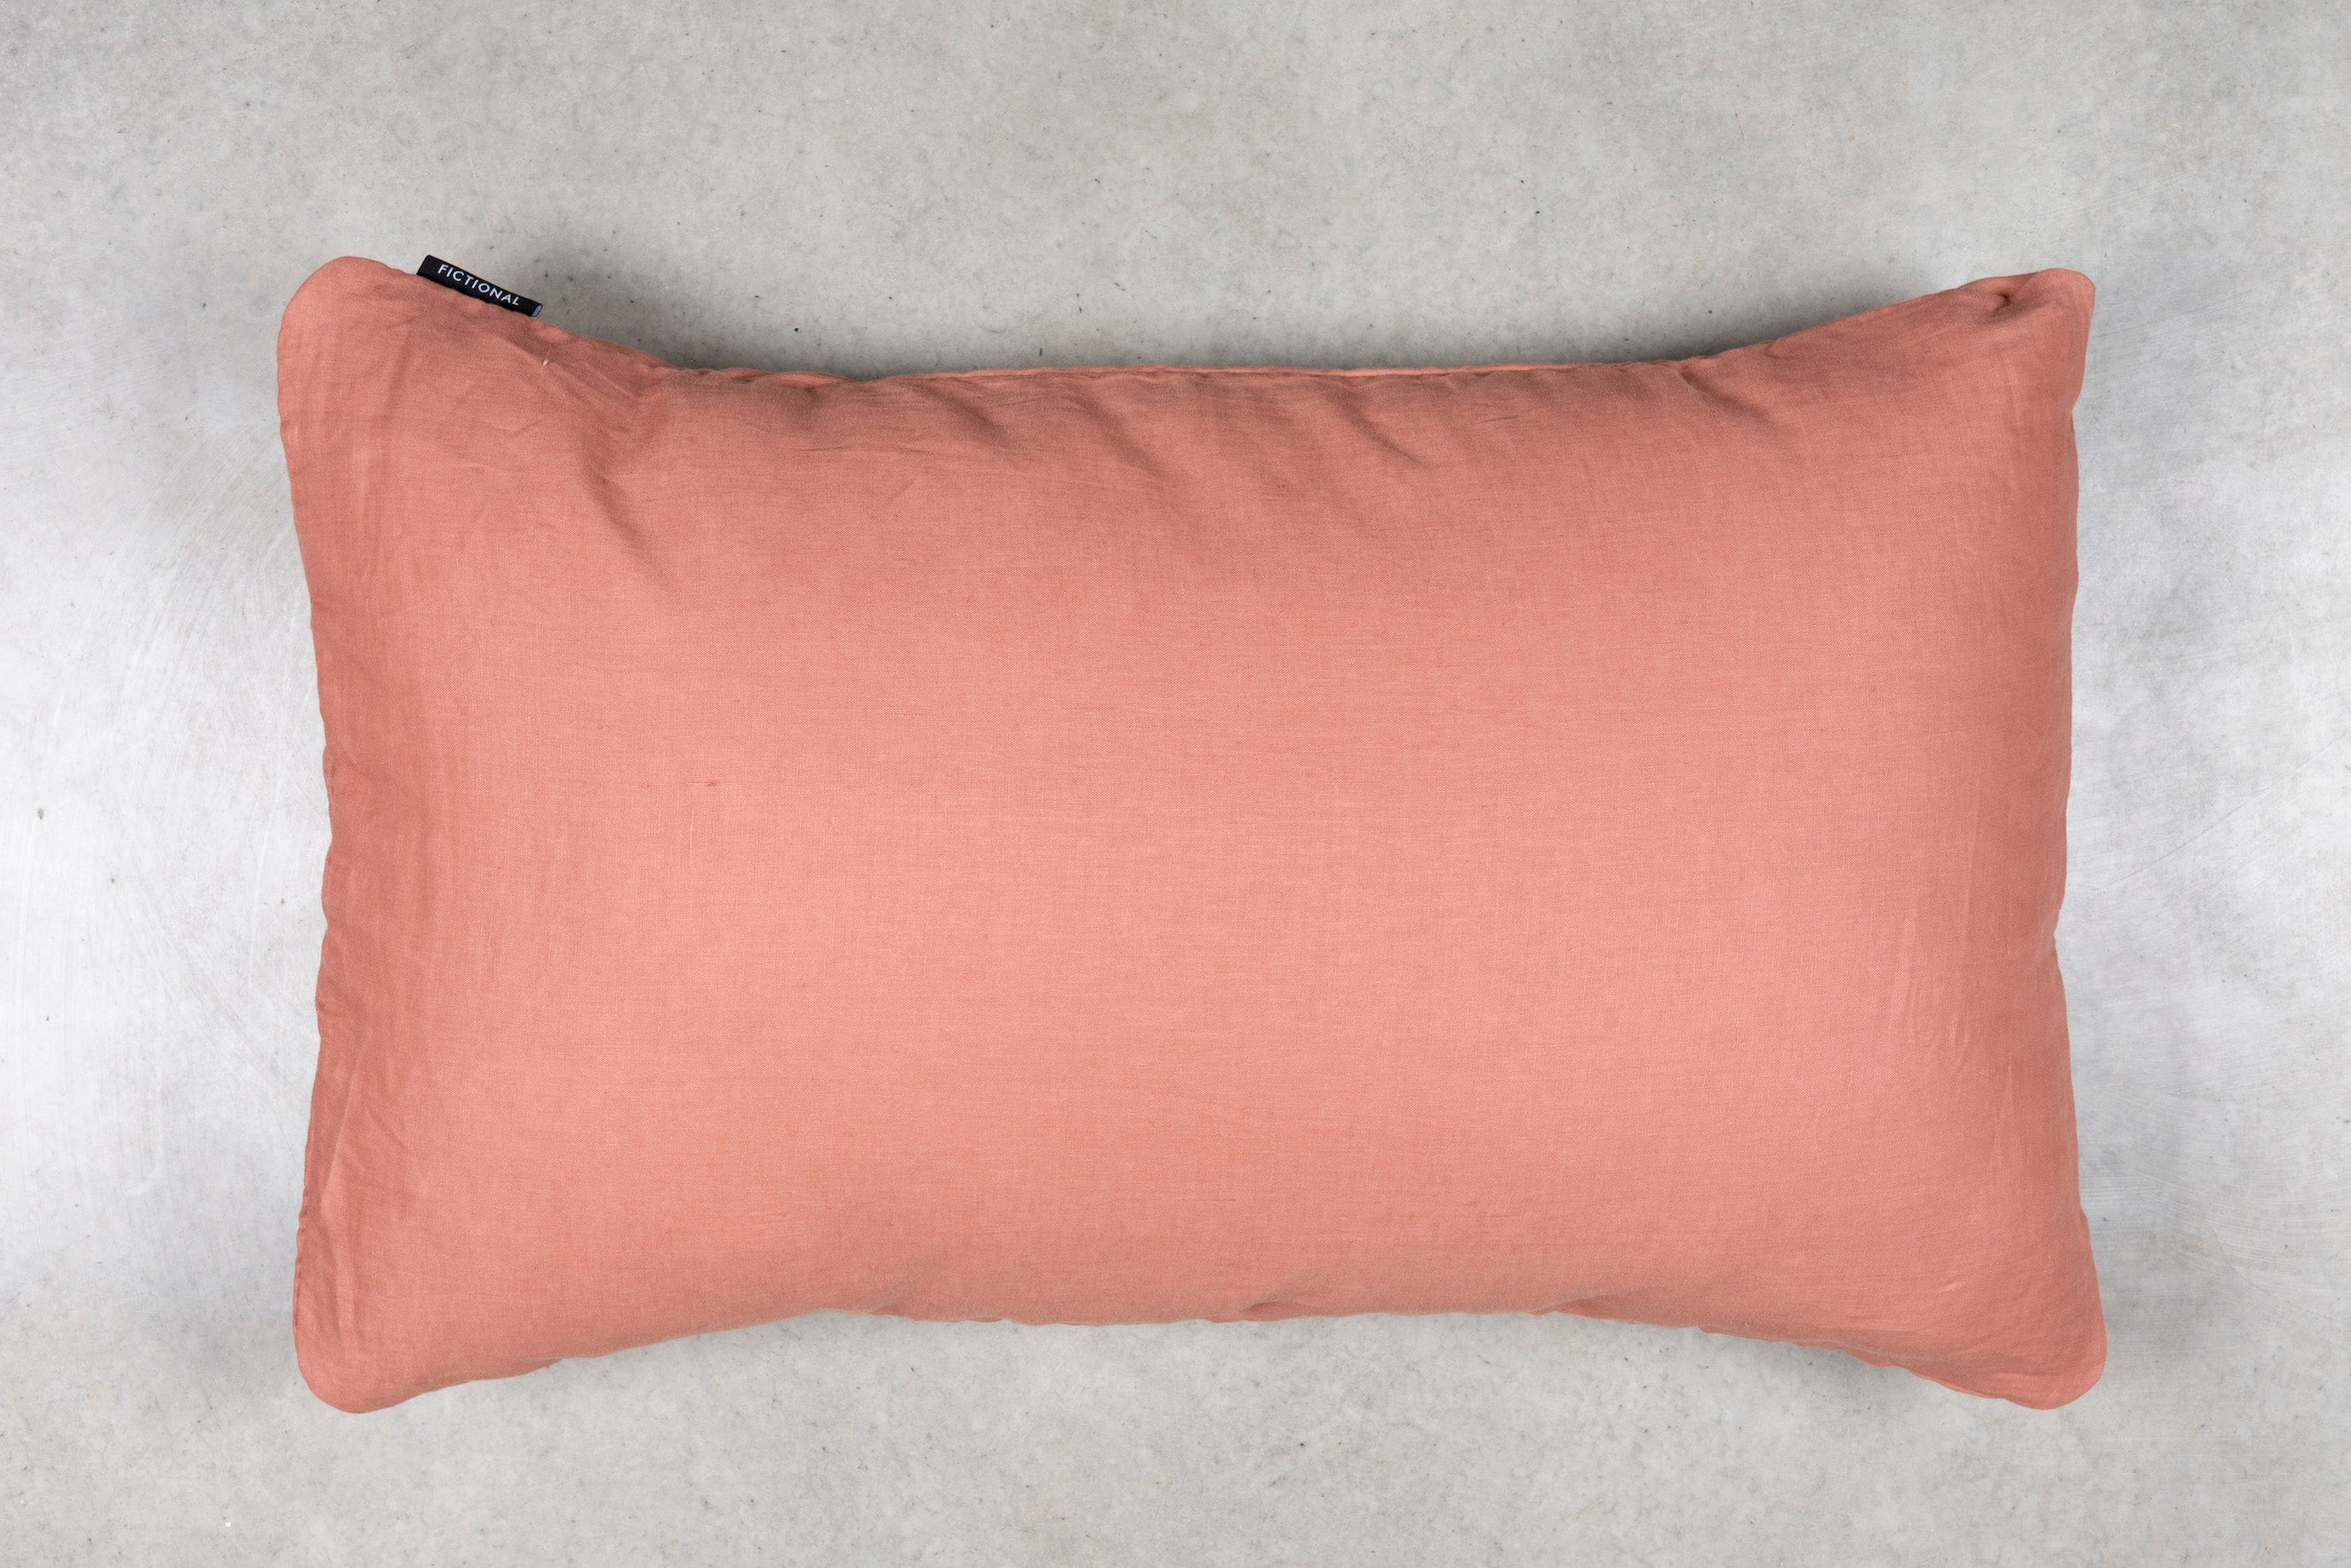 Dusk Linen - Single Standard Pillowcase